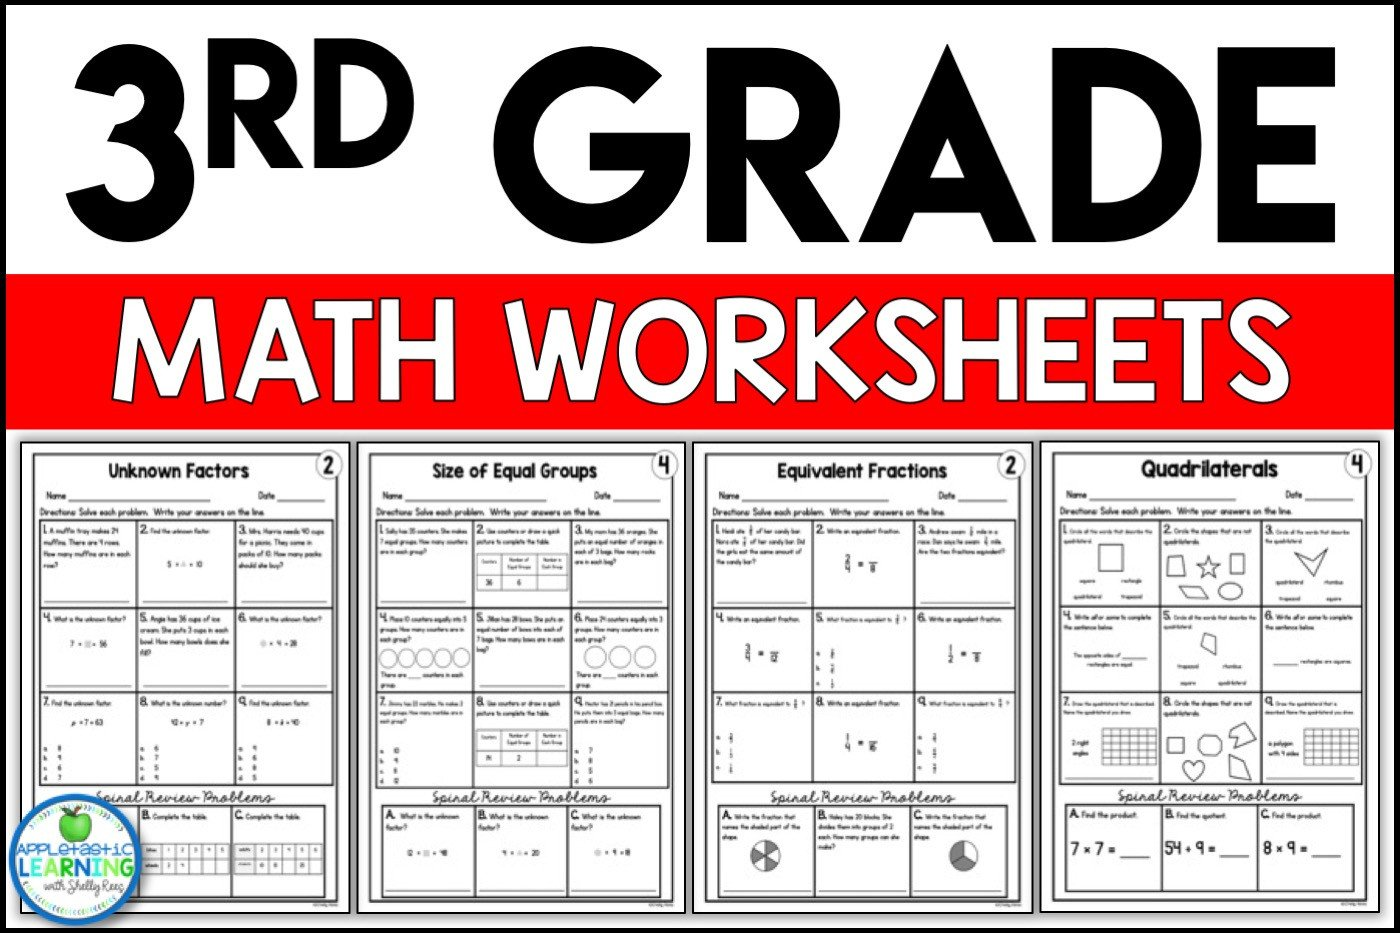 coloring bookrd grade math worksheets games printable free third to print khan academy